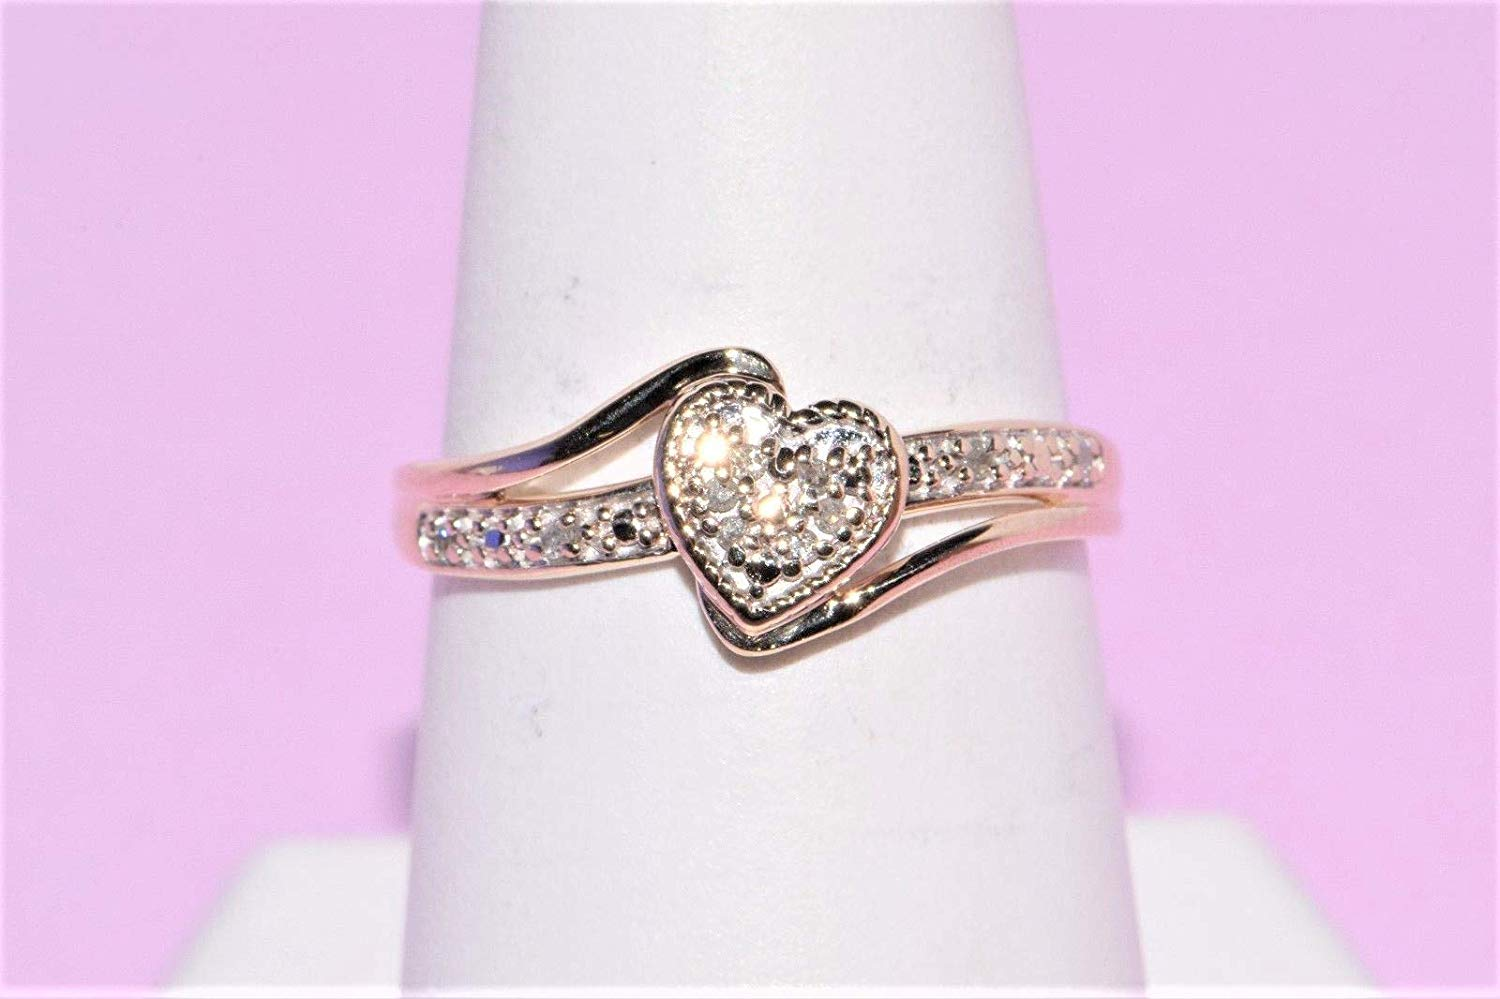 1//8 cttw, Diamond Wedding Band in 10K Yellow Gold G-H,I2-I3 Size-7.25